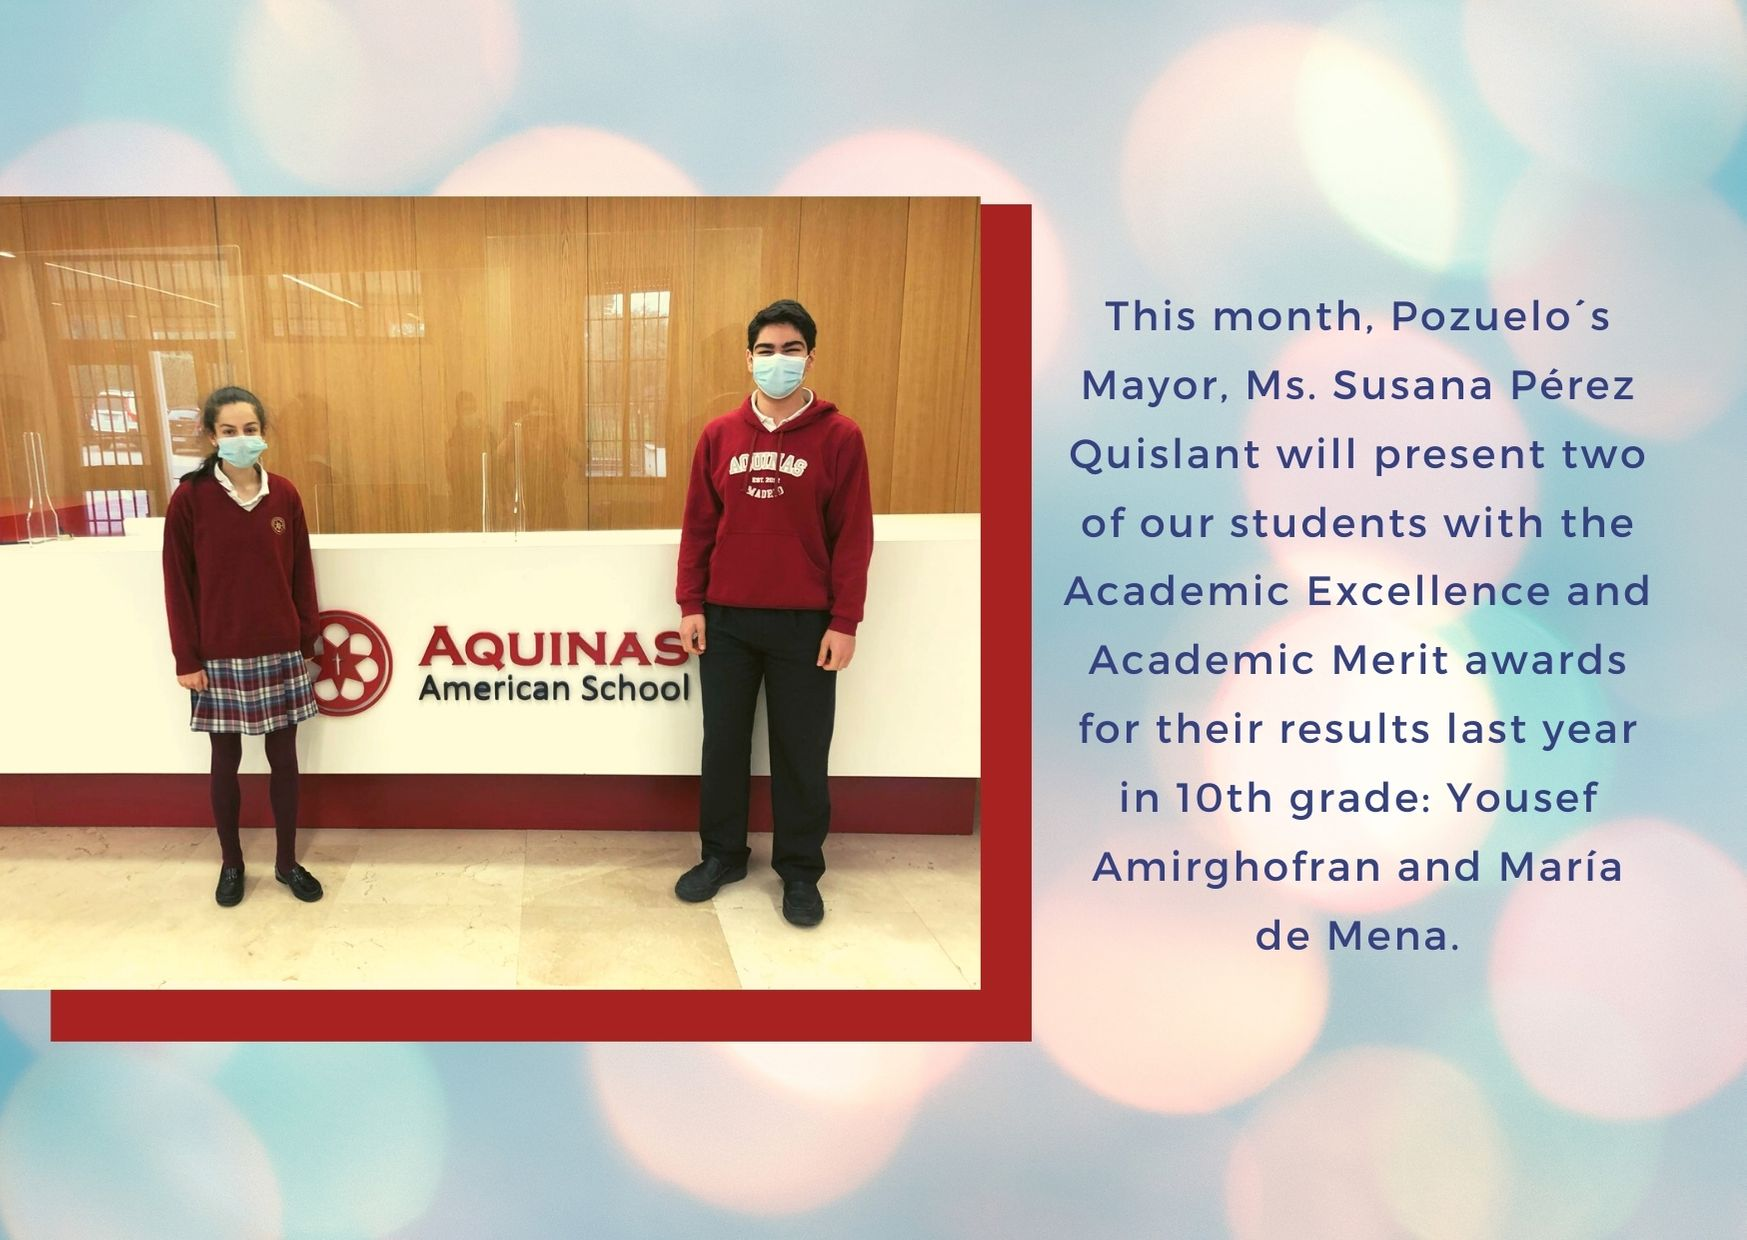 Pozuelo´s Mayor, Ms. Susana Pérez Quislant Will Present Two of Our Students with the Academic Excellence and Academic Merit Awards